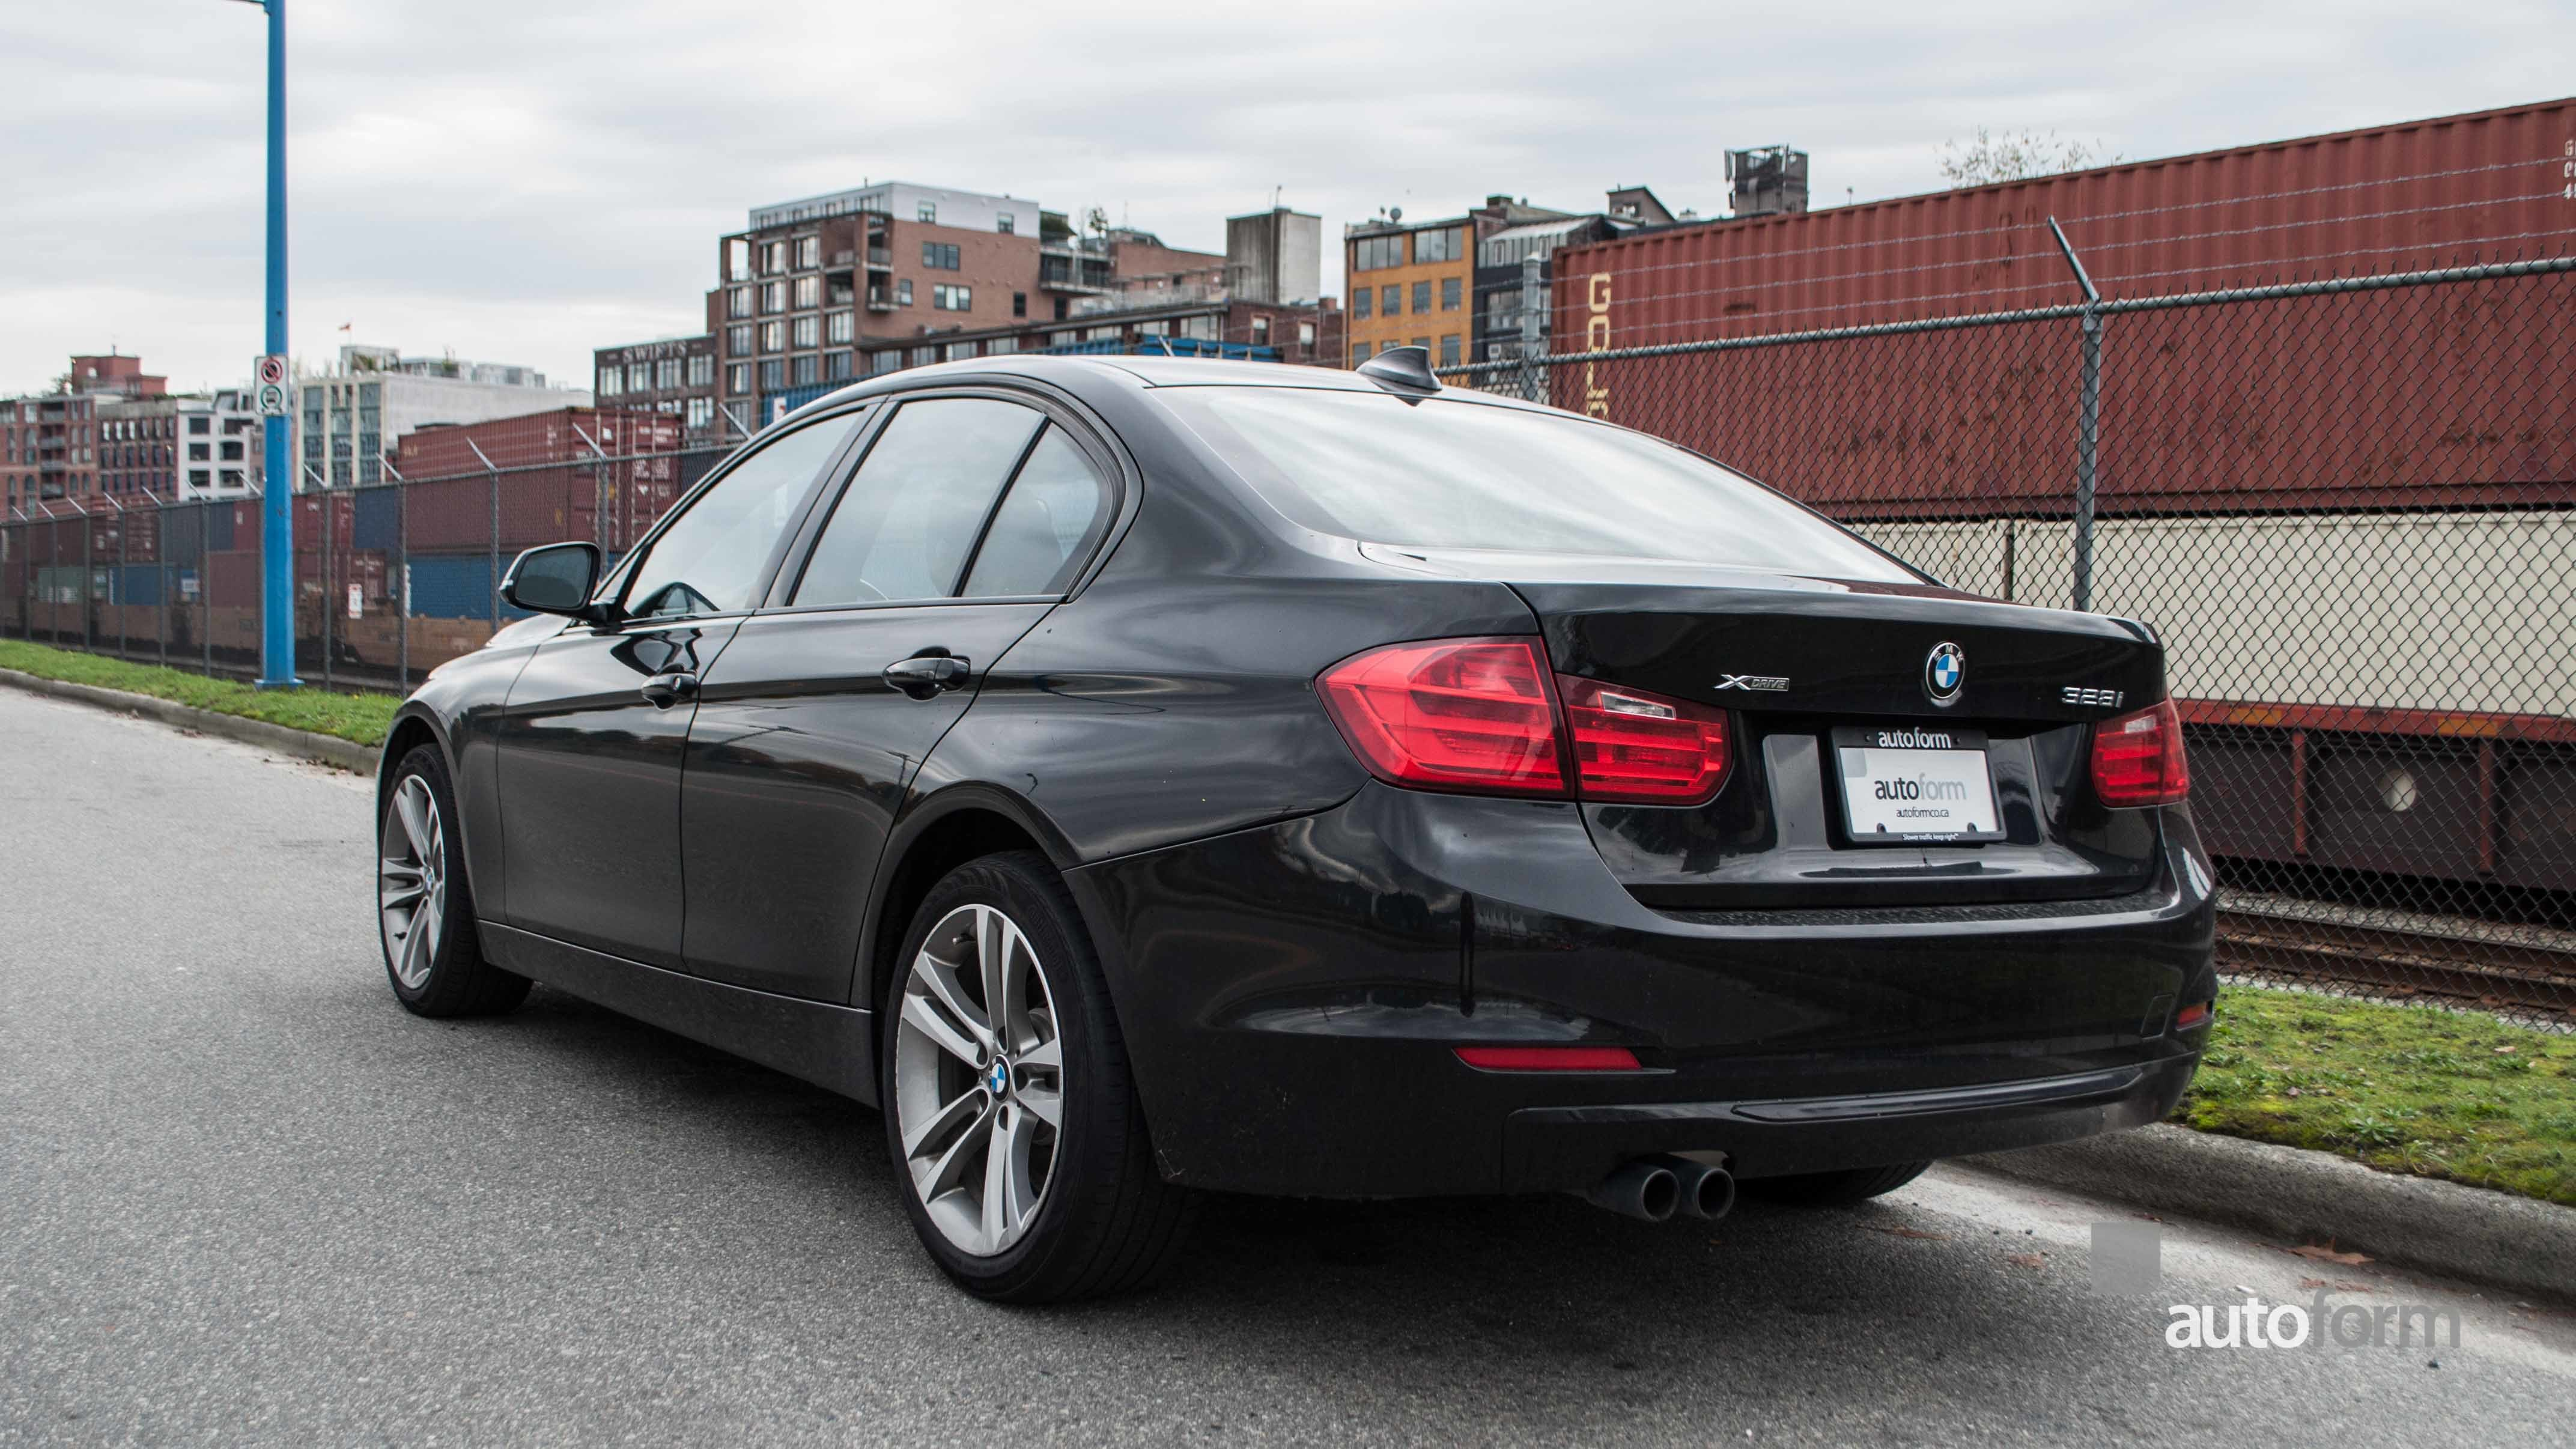 2015 Bmw 328i Xdrive Autoform